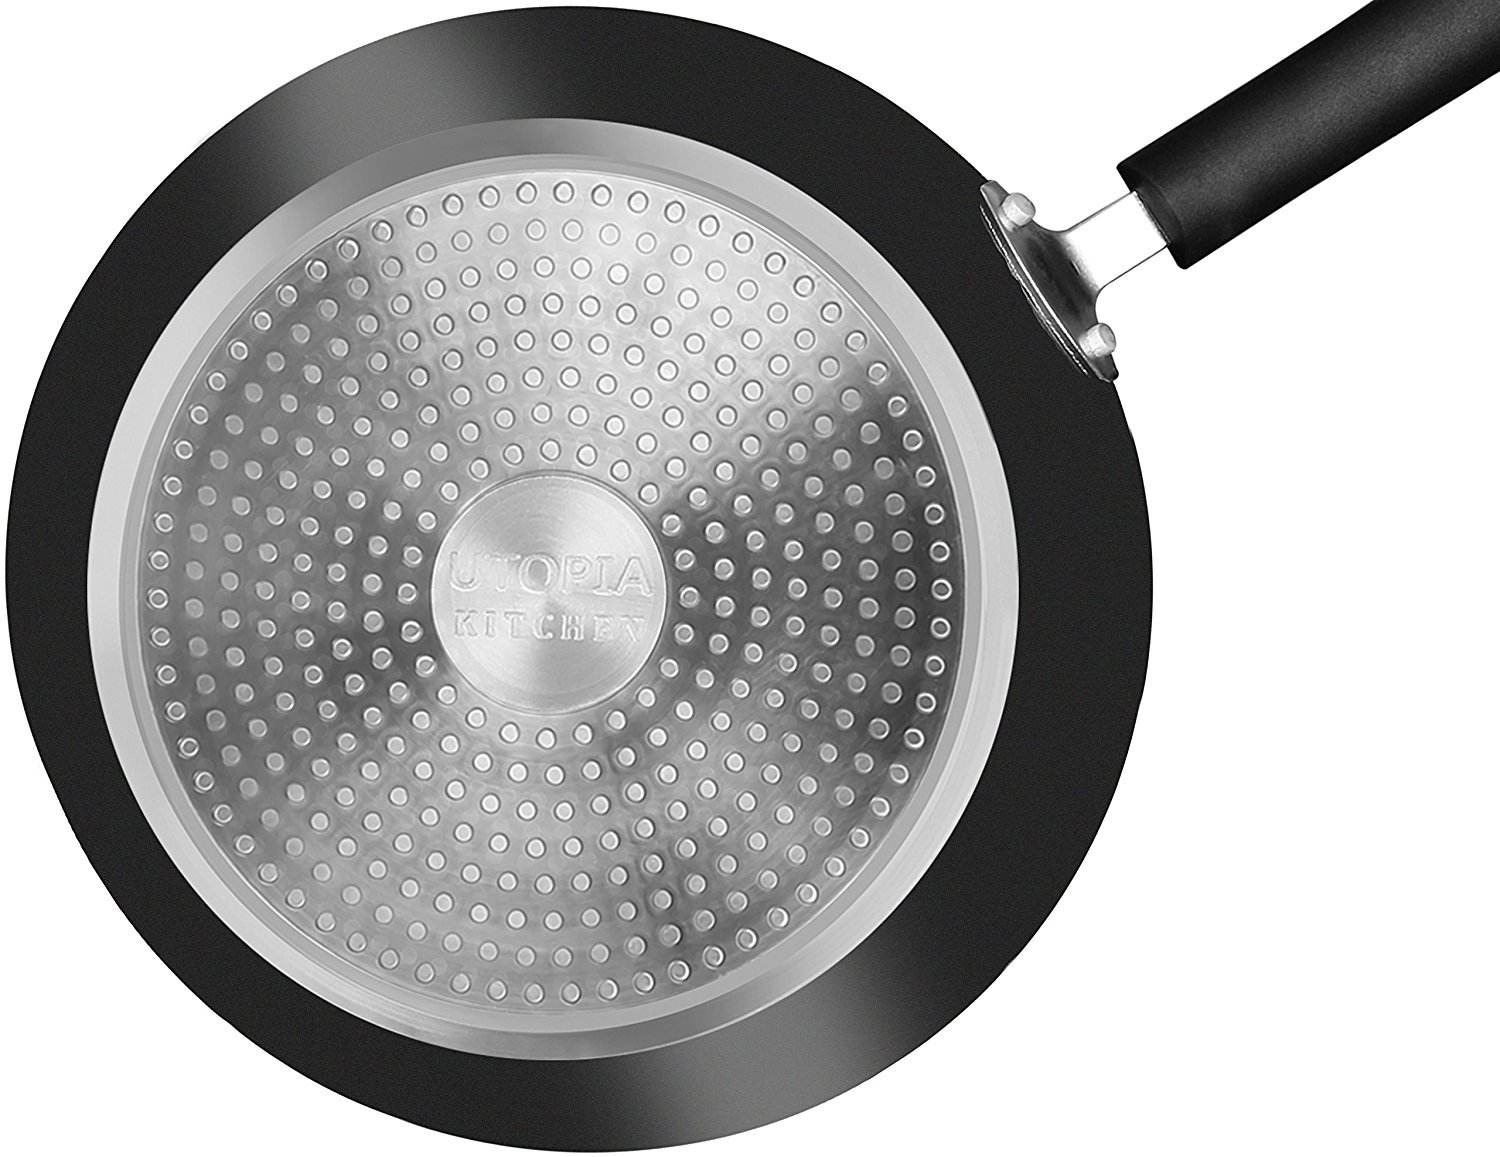 Utopia Kitchen Nonstick Frying Pan Set - 3 Piece Induction Bottom - 8 Inch, 9.5 Inch and 11 Inch by Utopia Kitchen (Image #3)